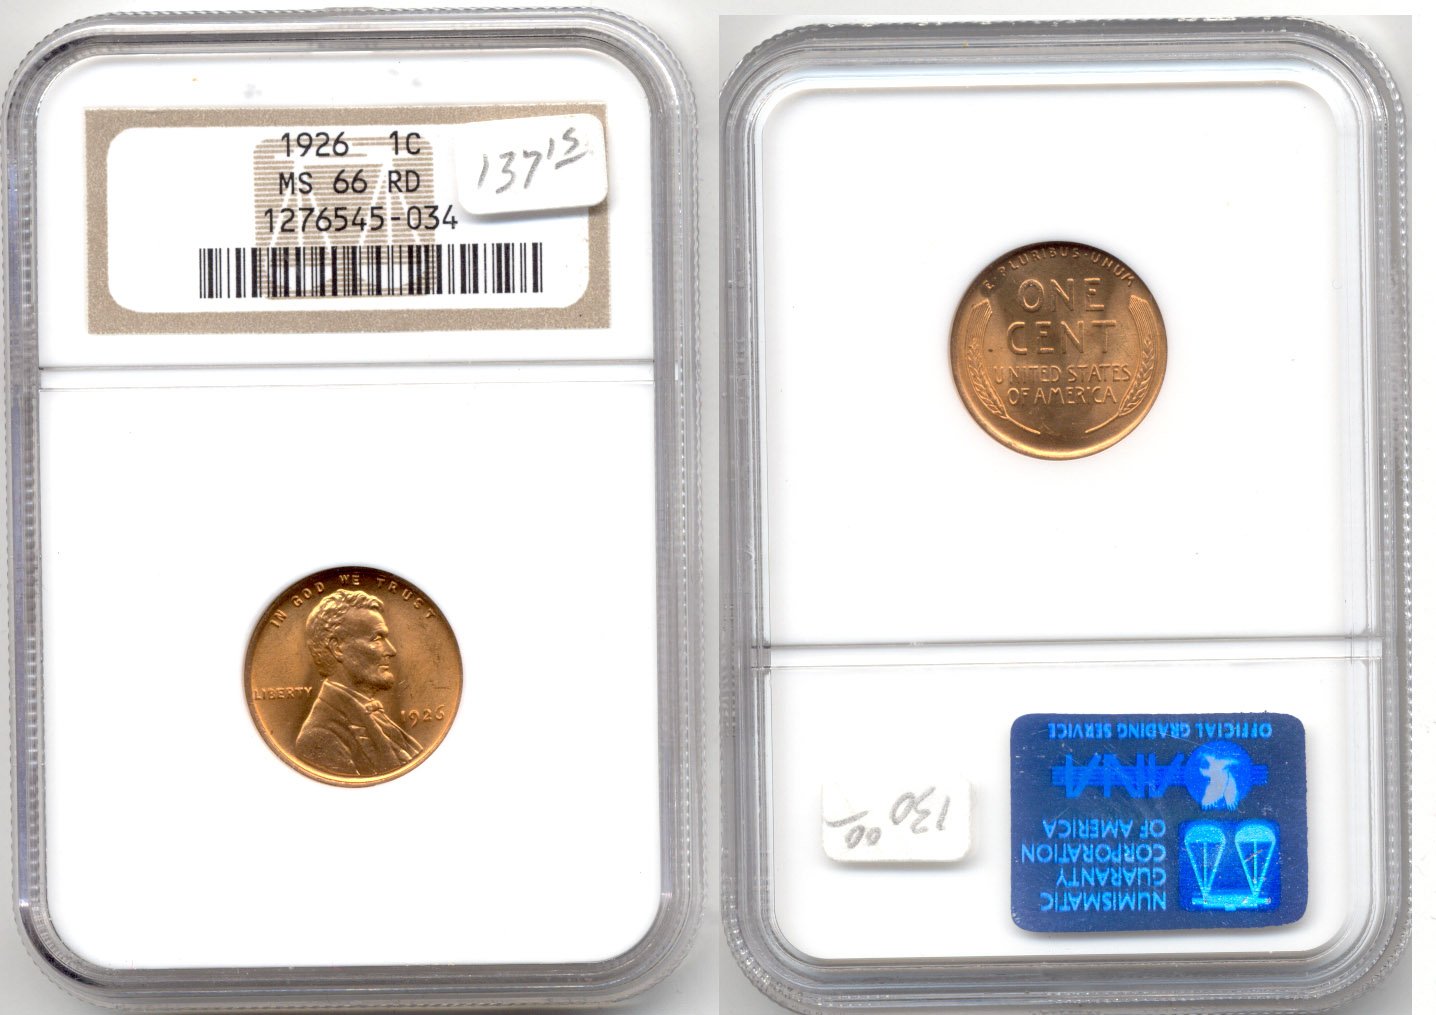 1926 Lincoln Cent NGC MS-66 Red